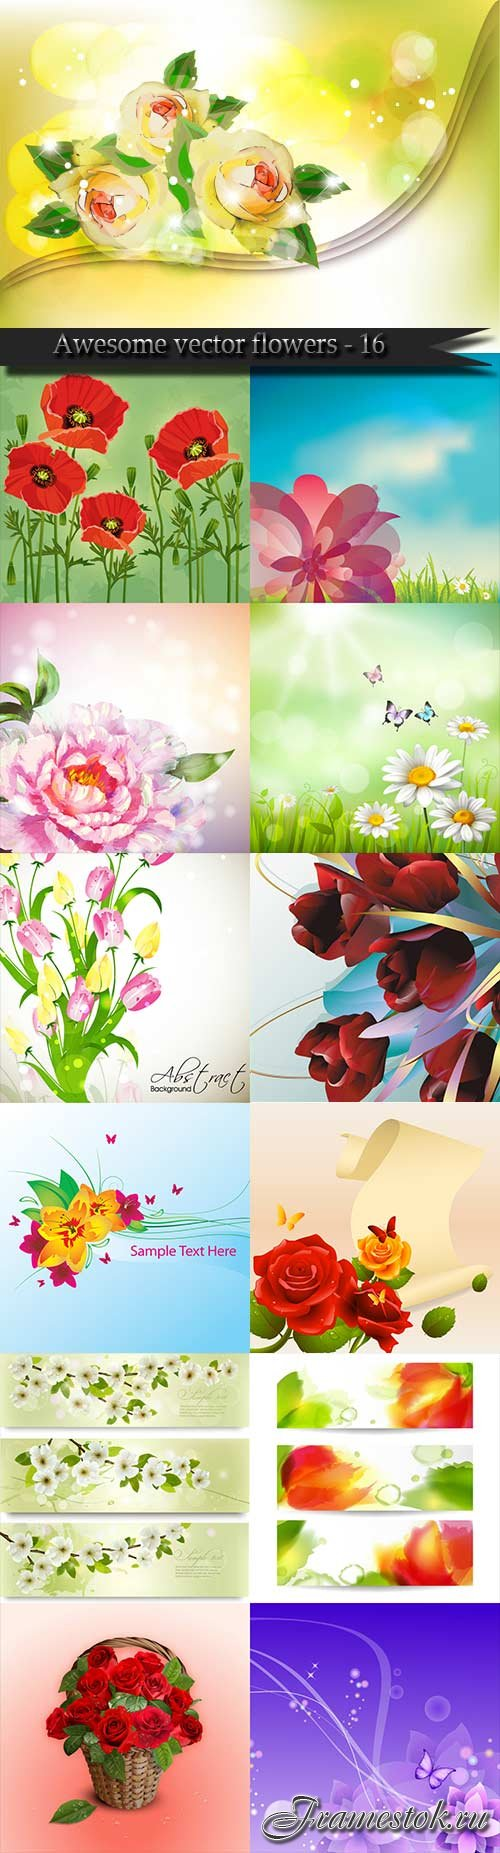 Awesome vector flowers - 16